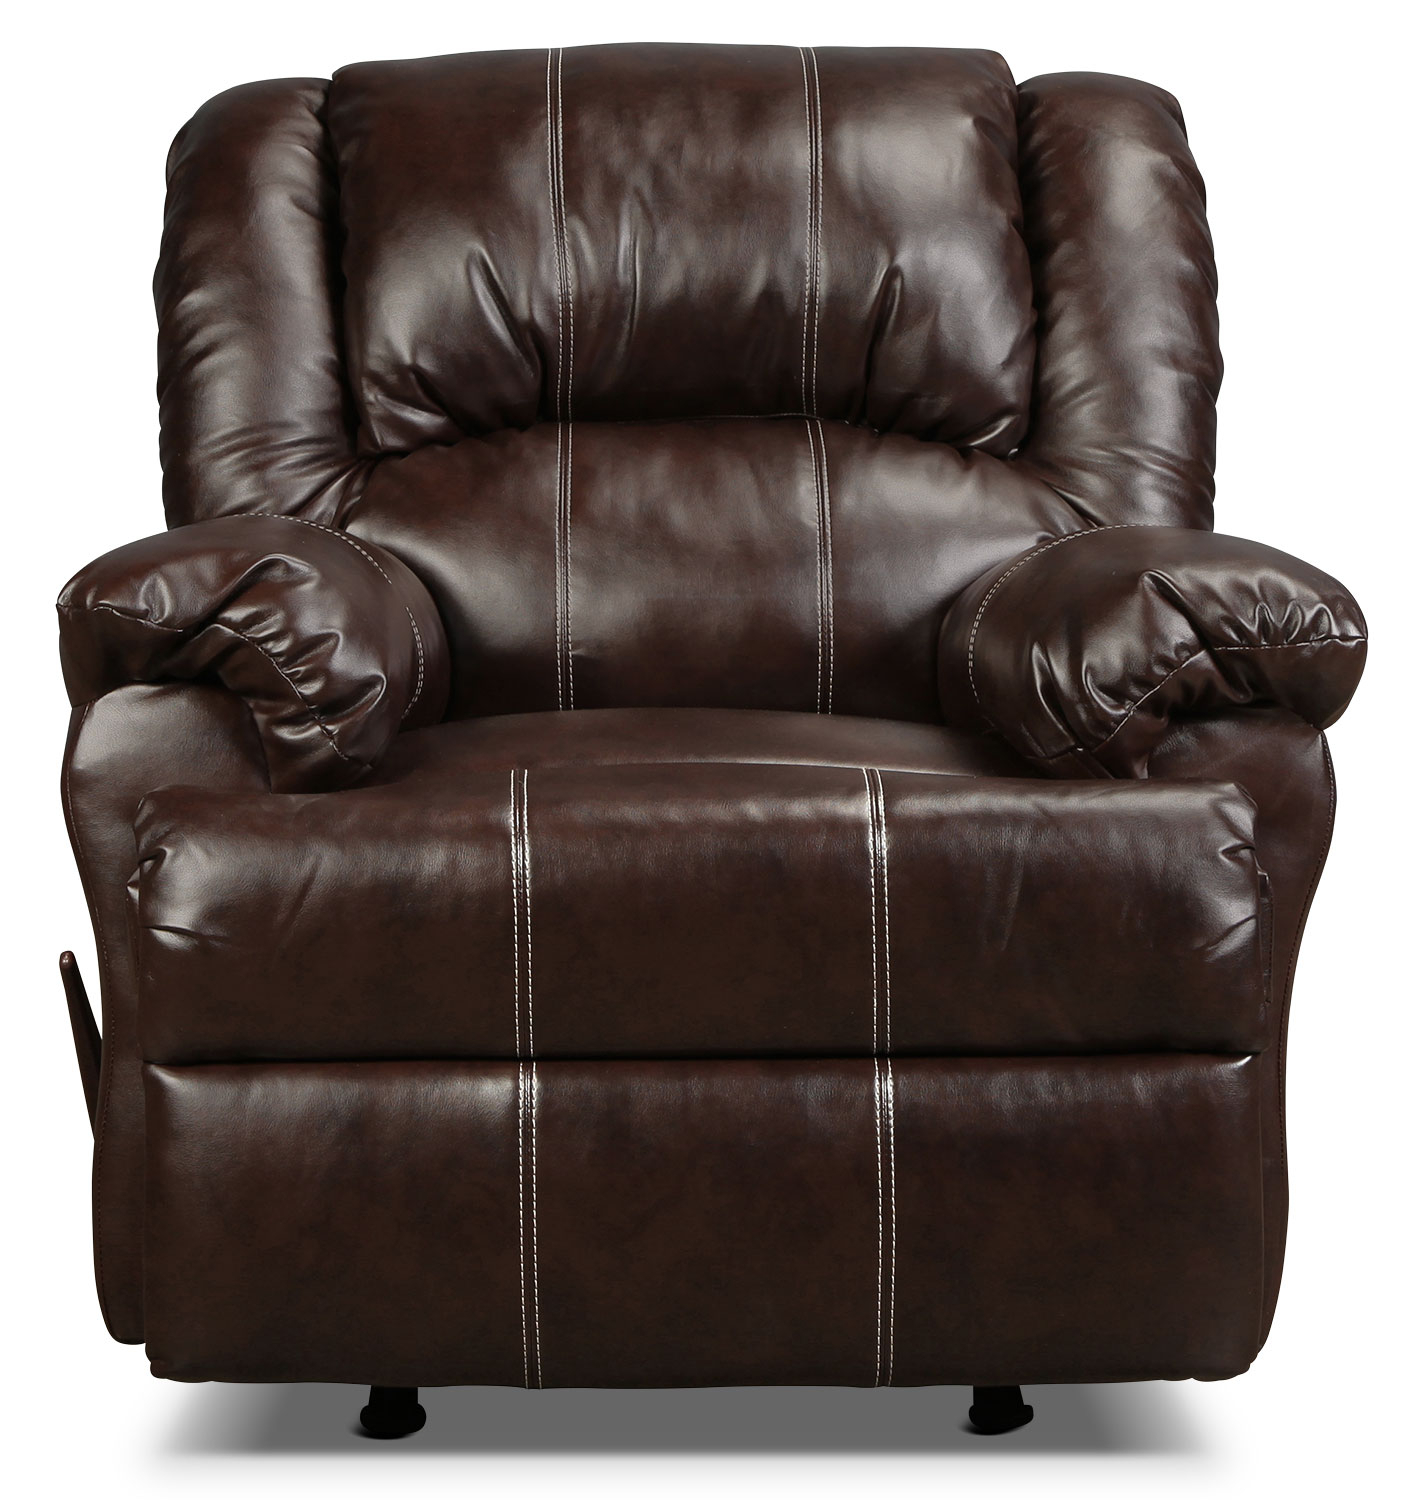 Decker Recliner – Brown | In Decker Ii Fabric Swivel Glider Recliners (Image 4 of 20)